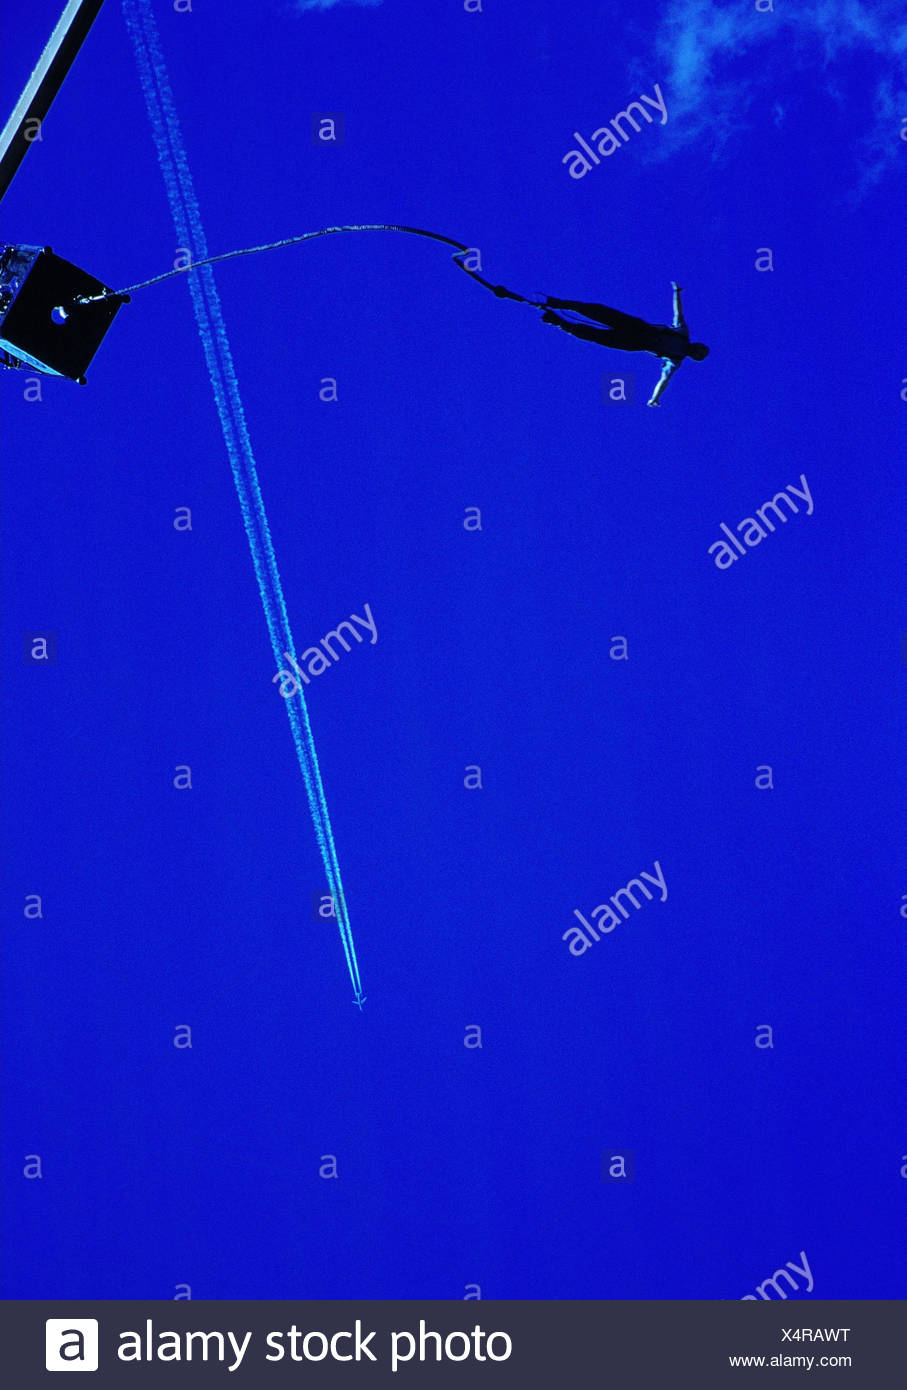 Bungeejumping, airplane, condensation trail, from below, outside, Bungee, Jumping, jumping, crack, fall, saved, crack platform, jump, man, arms, spread, risk, danger, adventure, adventure sport, thrilling, excitement, courage, heaven, blue, jump ramp, dev Stock Photo